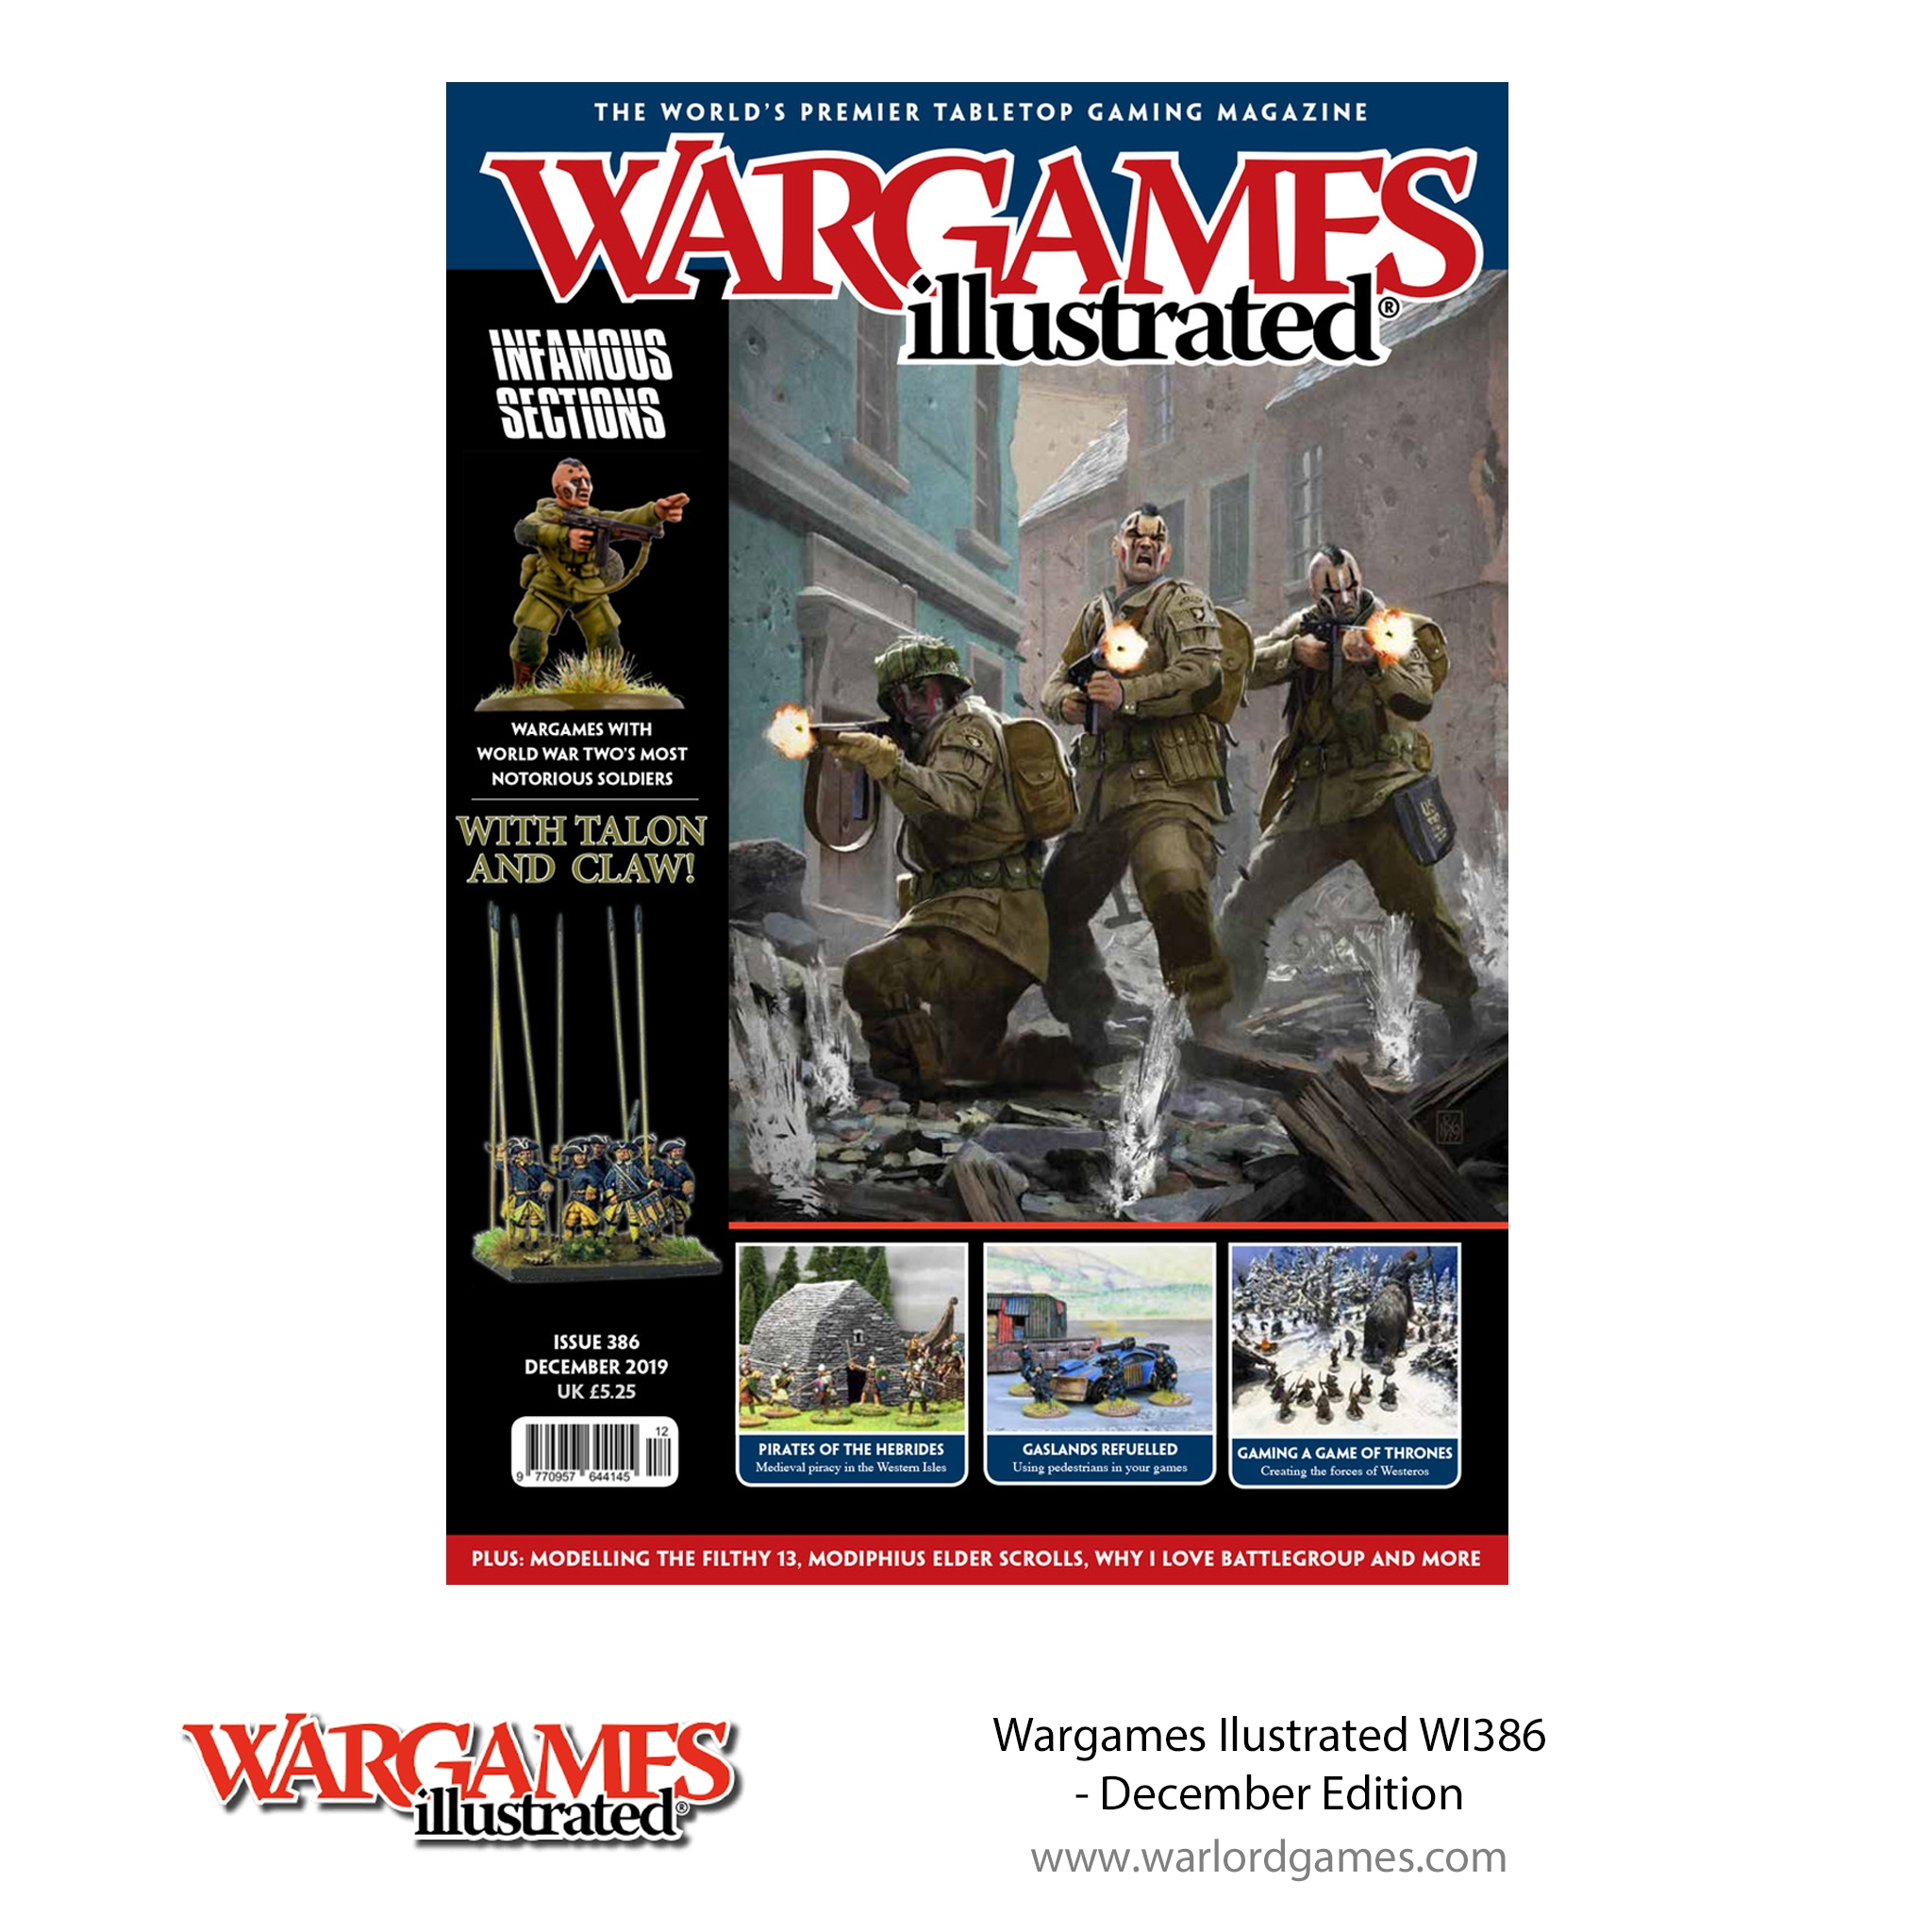 Wargames Illustrated: #386